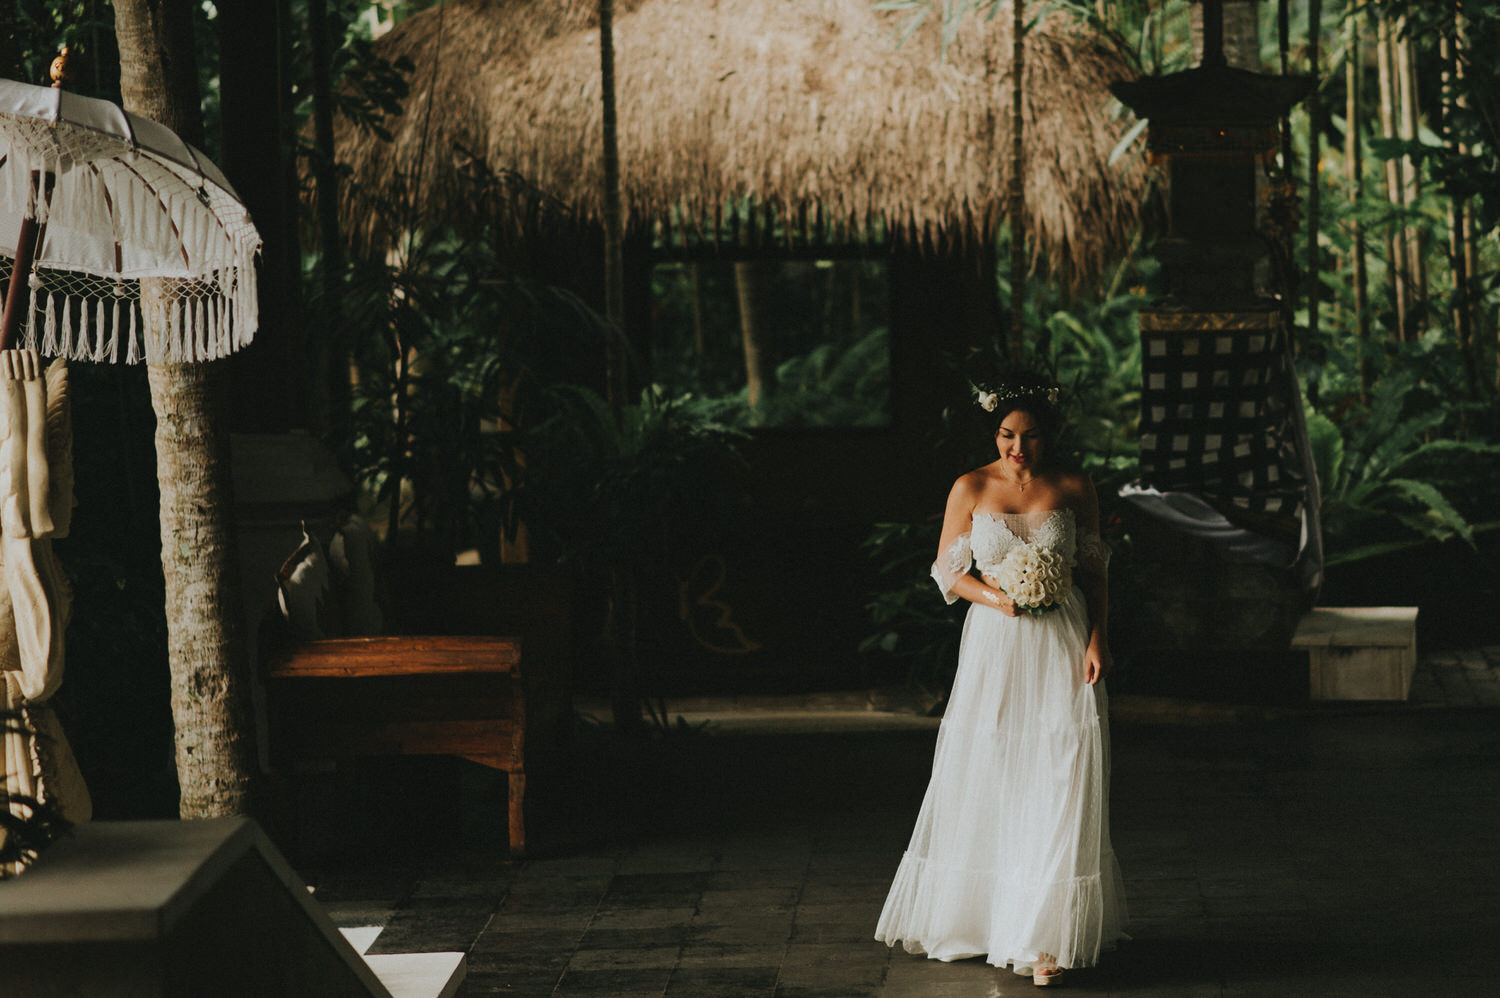 bali wedding - elopement - ubud wedding - diktatphotography - olga + Jason - 46